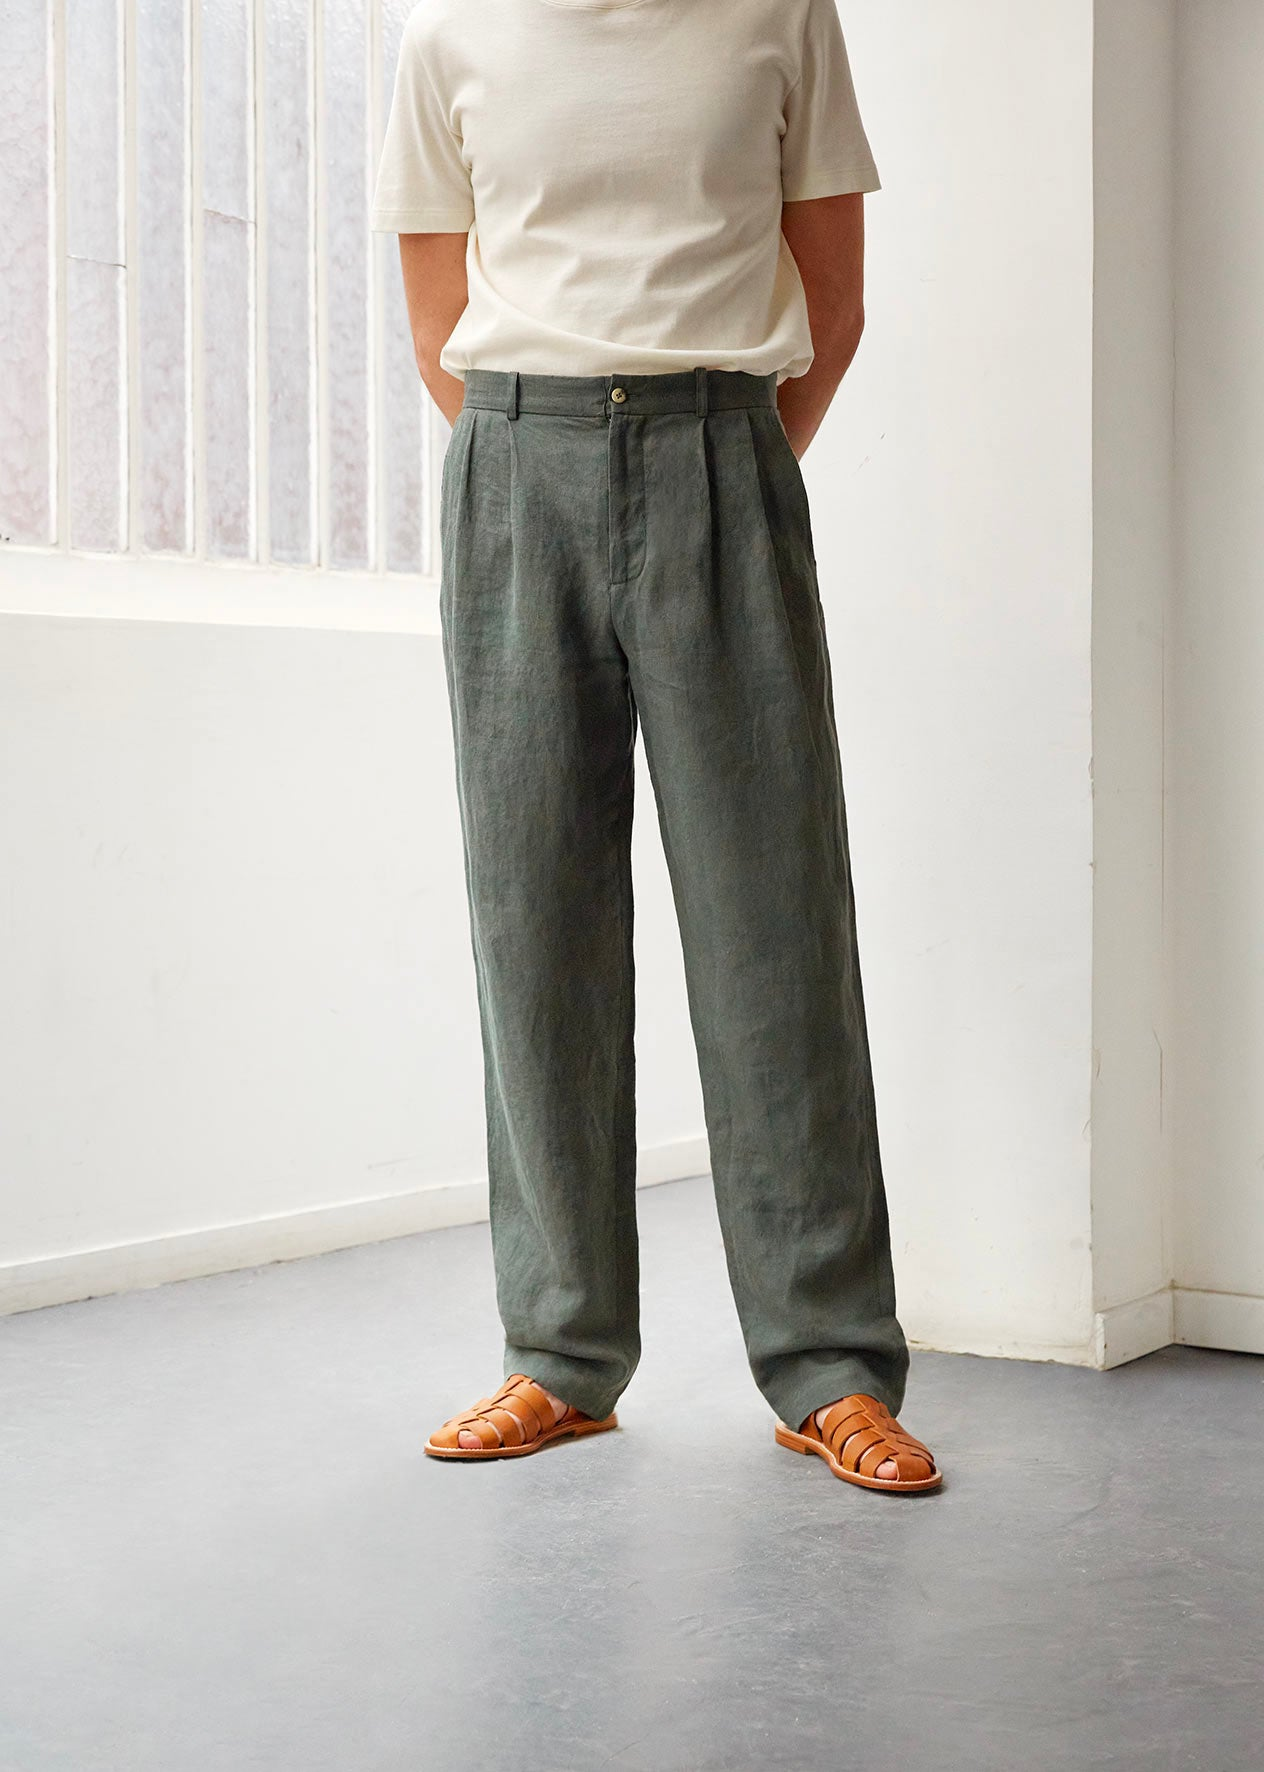 Two pleat large trousers - Washed & brushed linen - Jade - De Bonne Facture